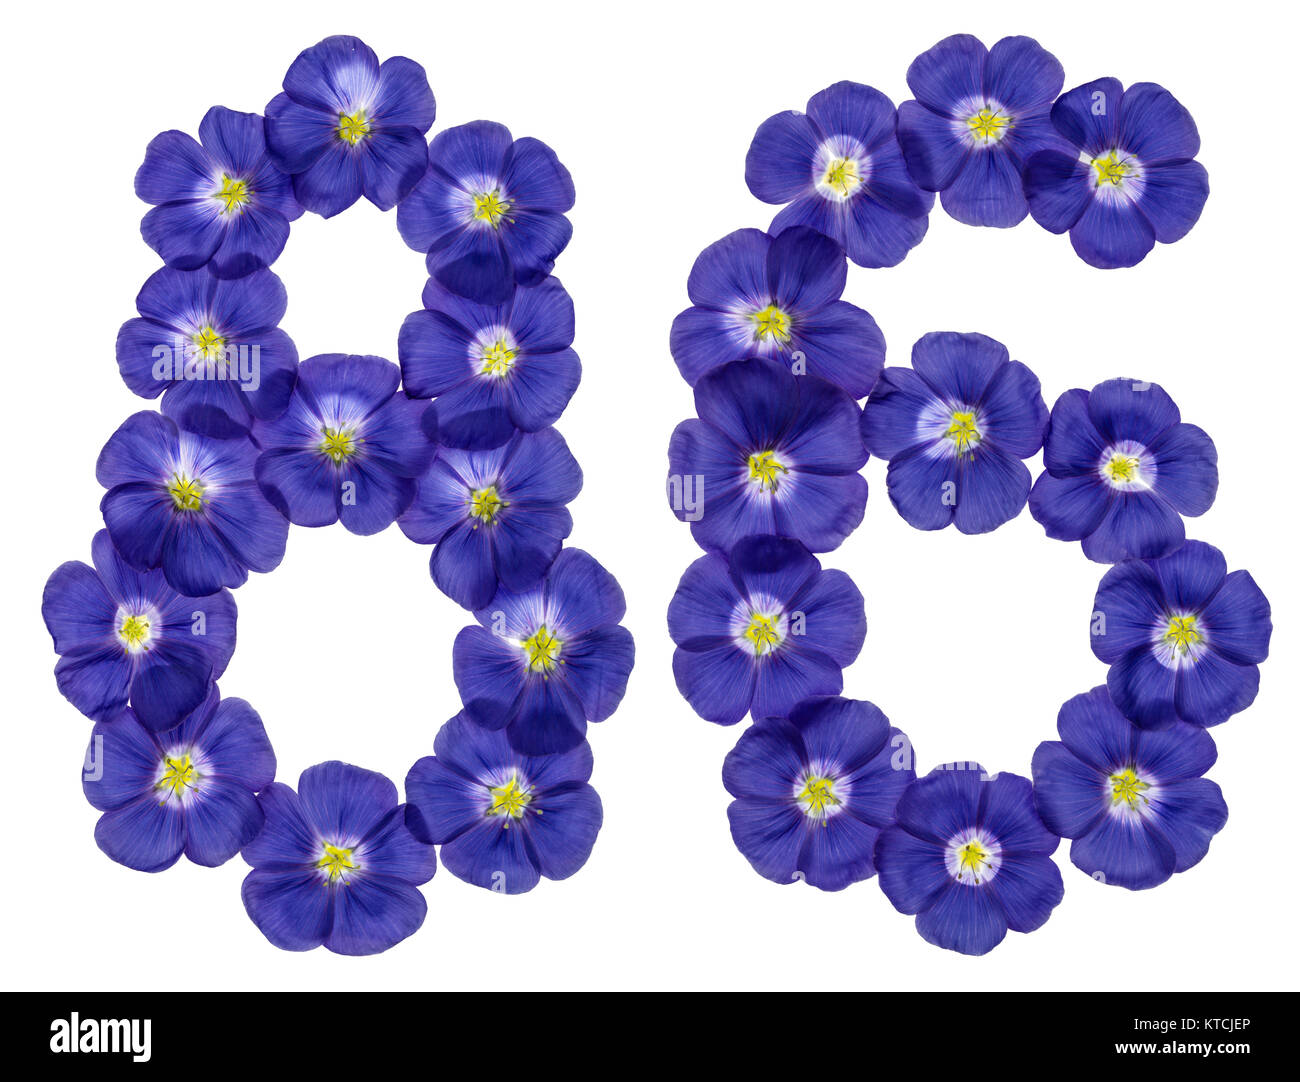 Arabic numeral 86, eighty six, from blue flowers of flax, isolated on white background Stock Photo